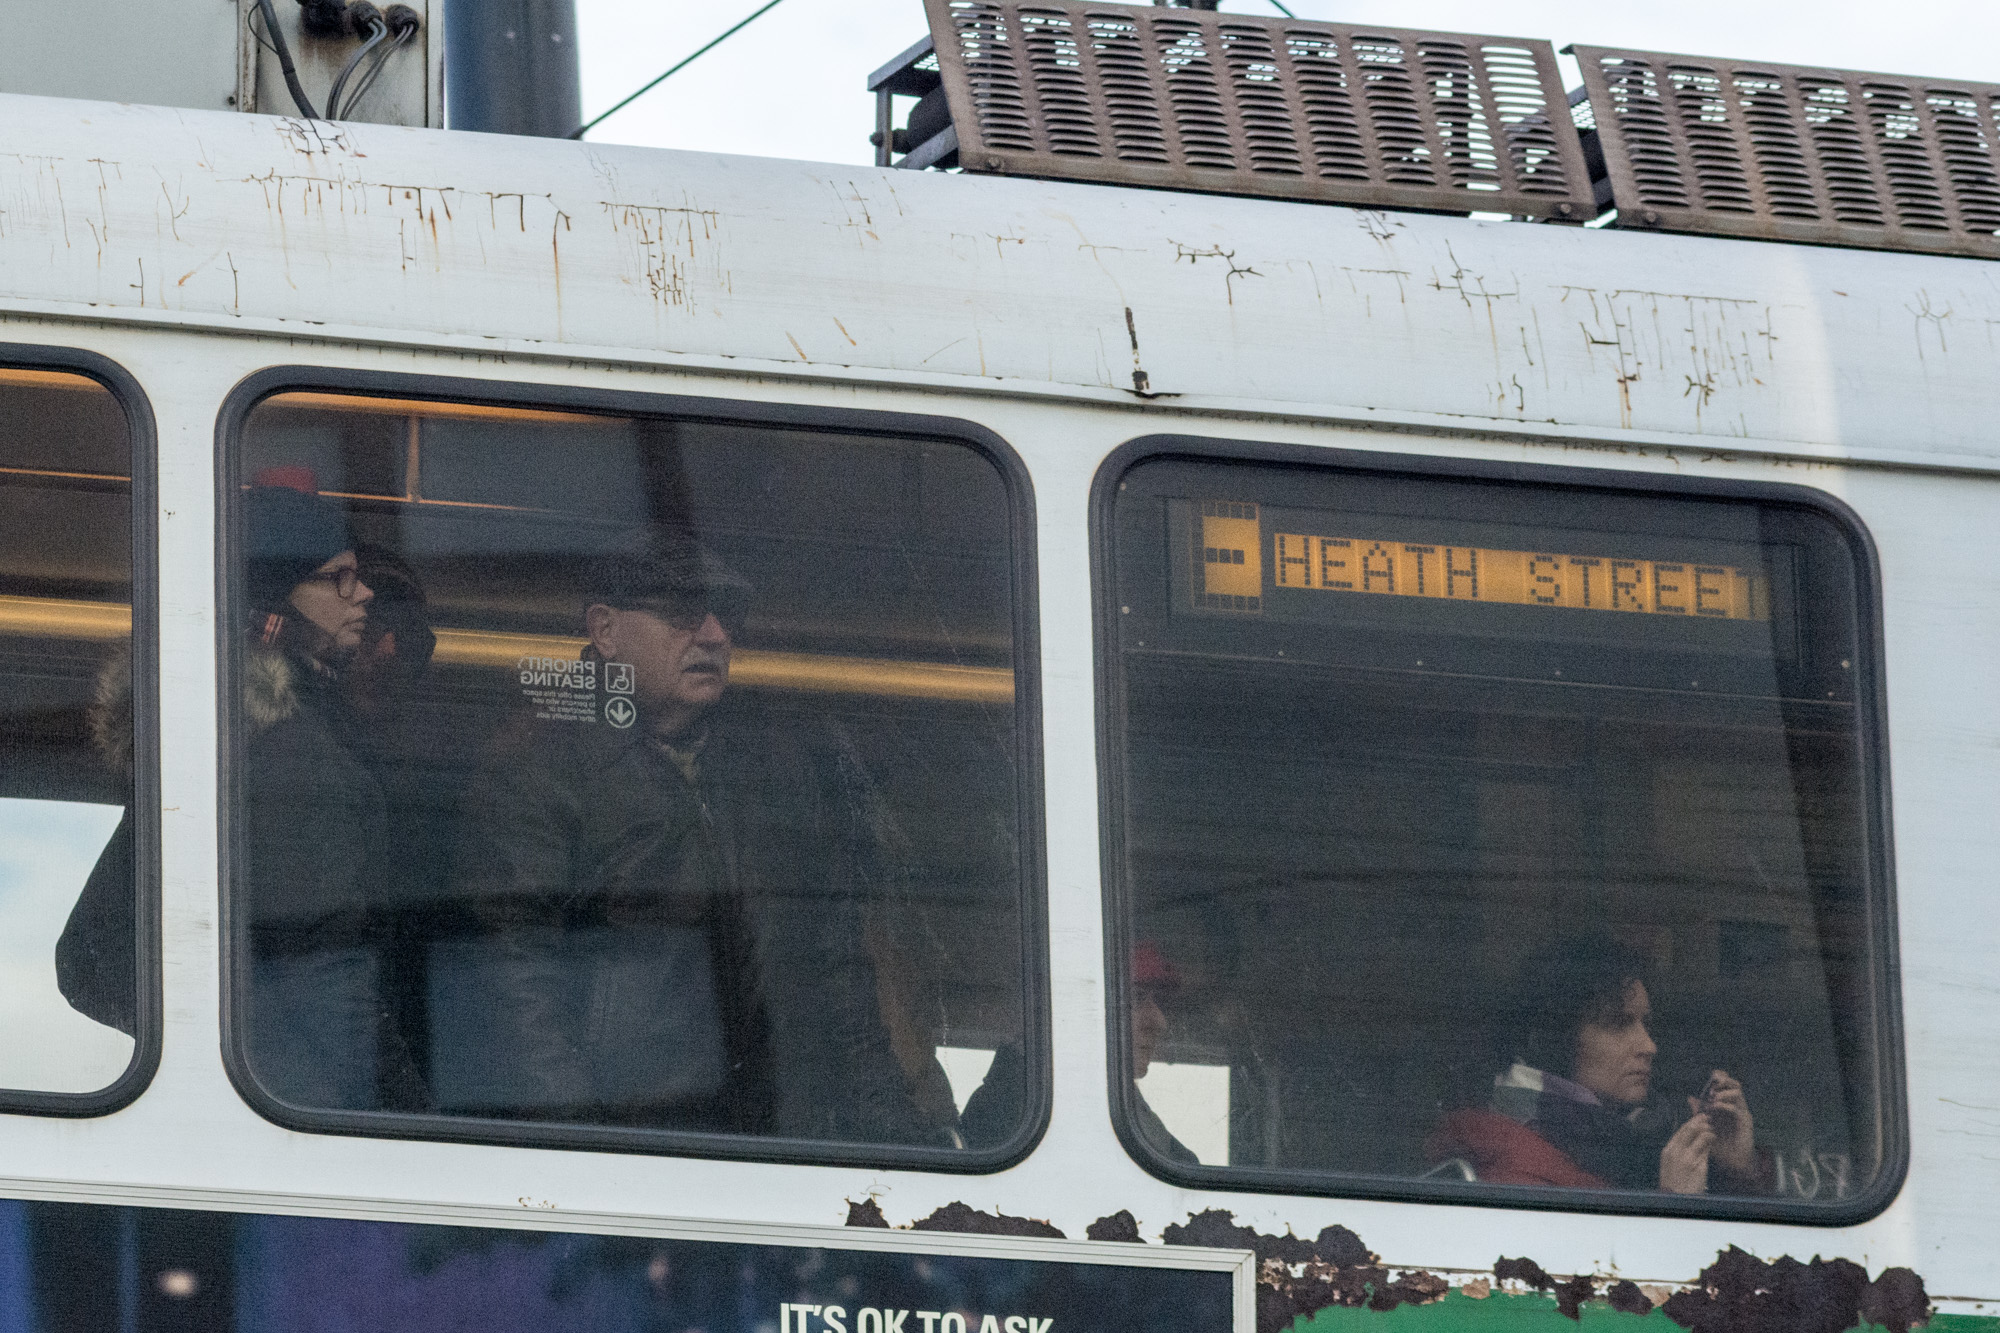 Train passengers watching the protesters on Martha Rd.